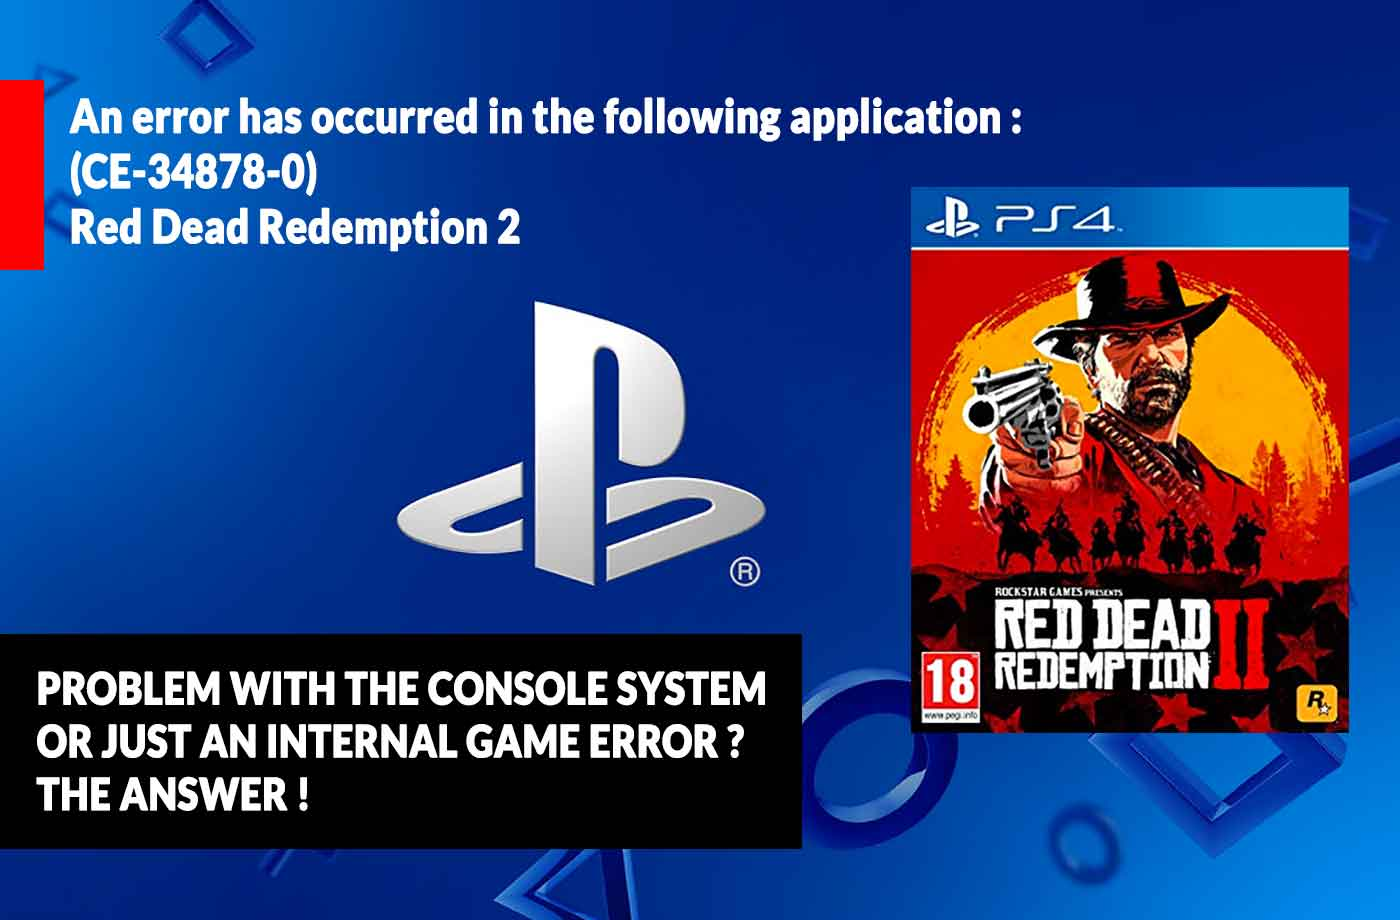 Red Dead Redemption 2 error CE-34878-0 on Red Dead Online